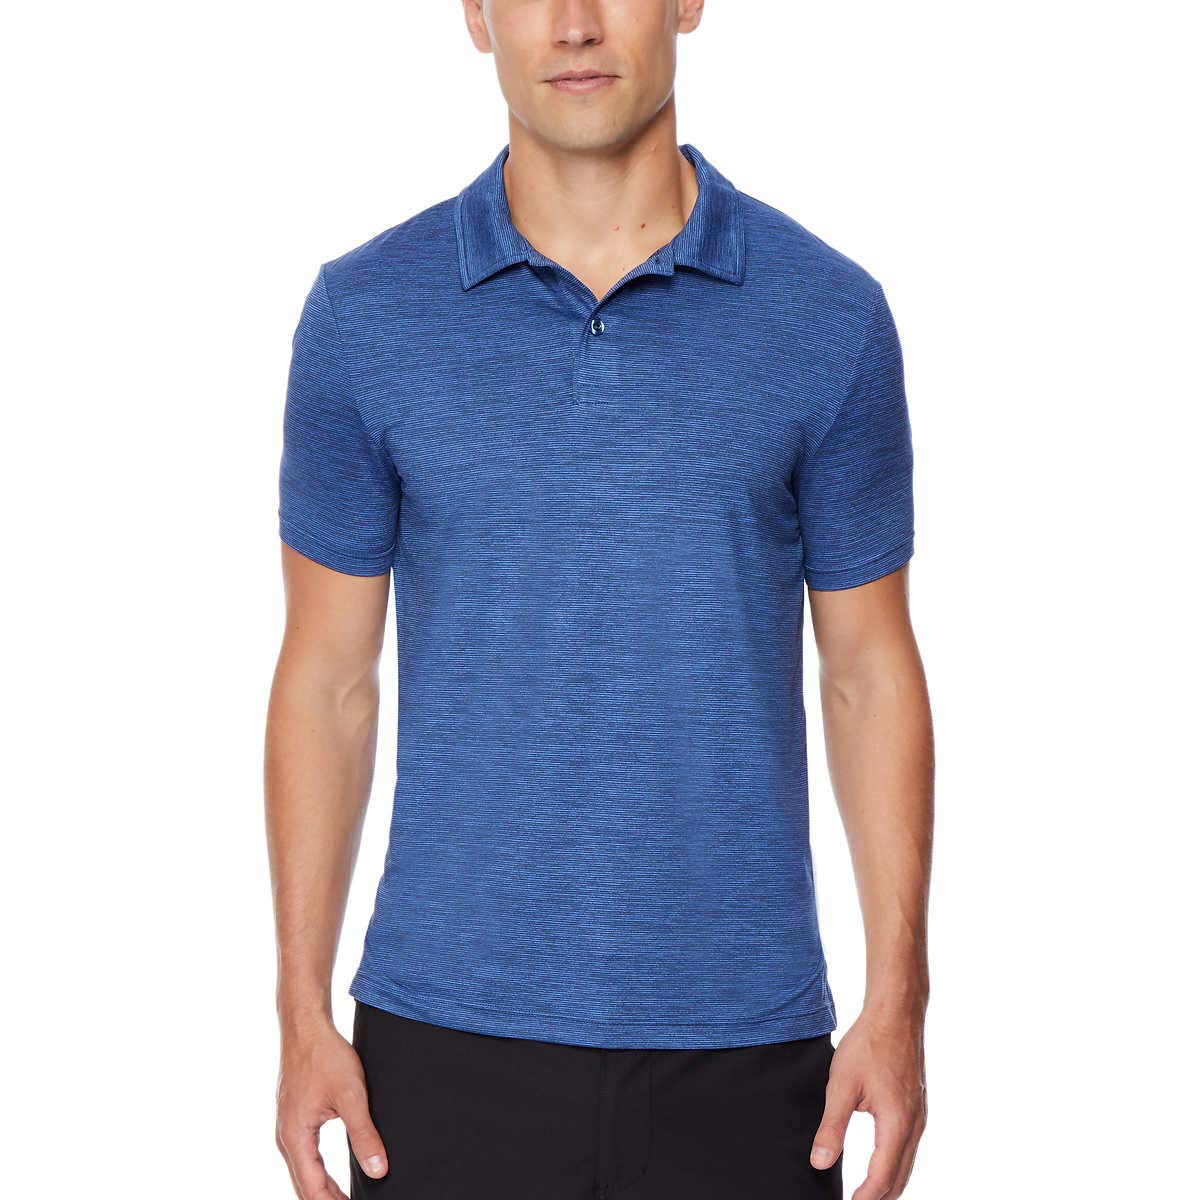 32 DEGREES Men's Ultra Lux Polo (XL, Blue)